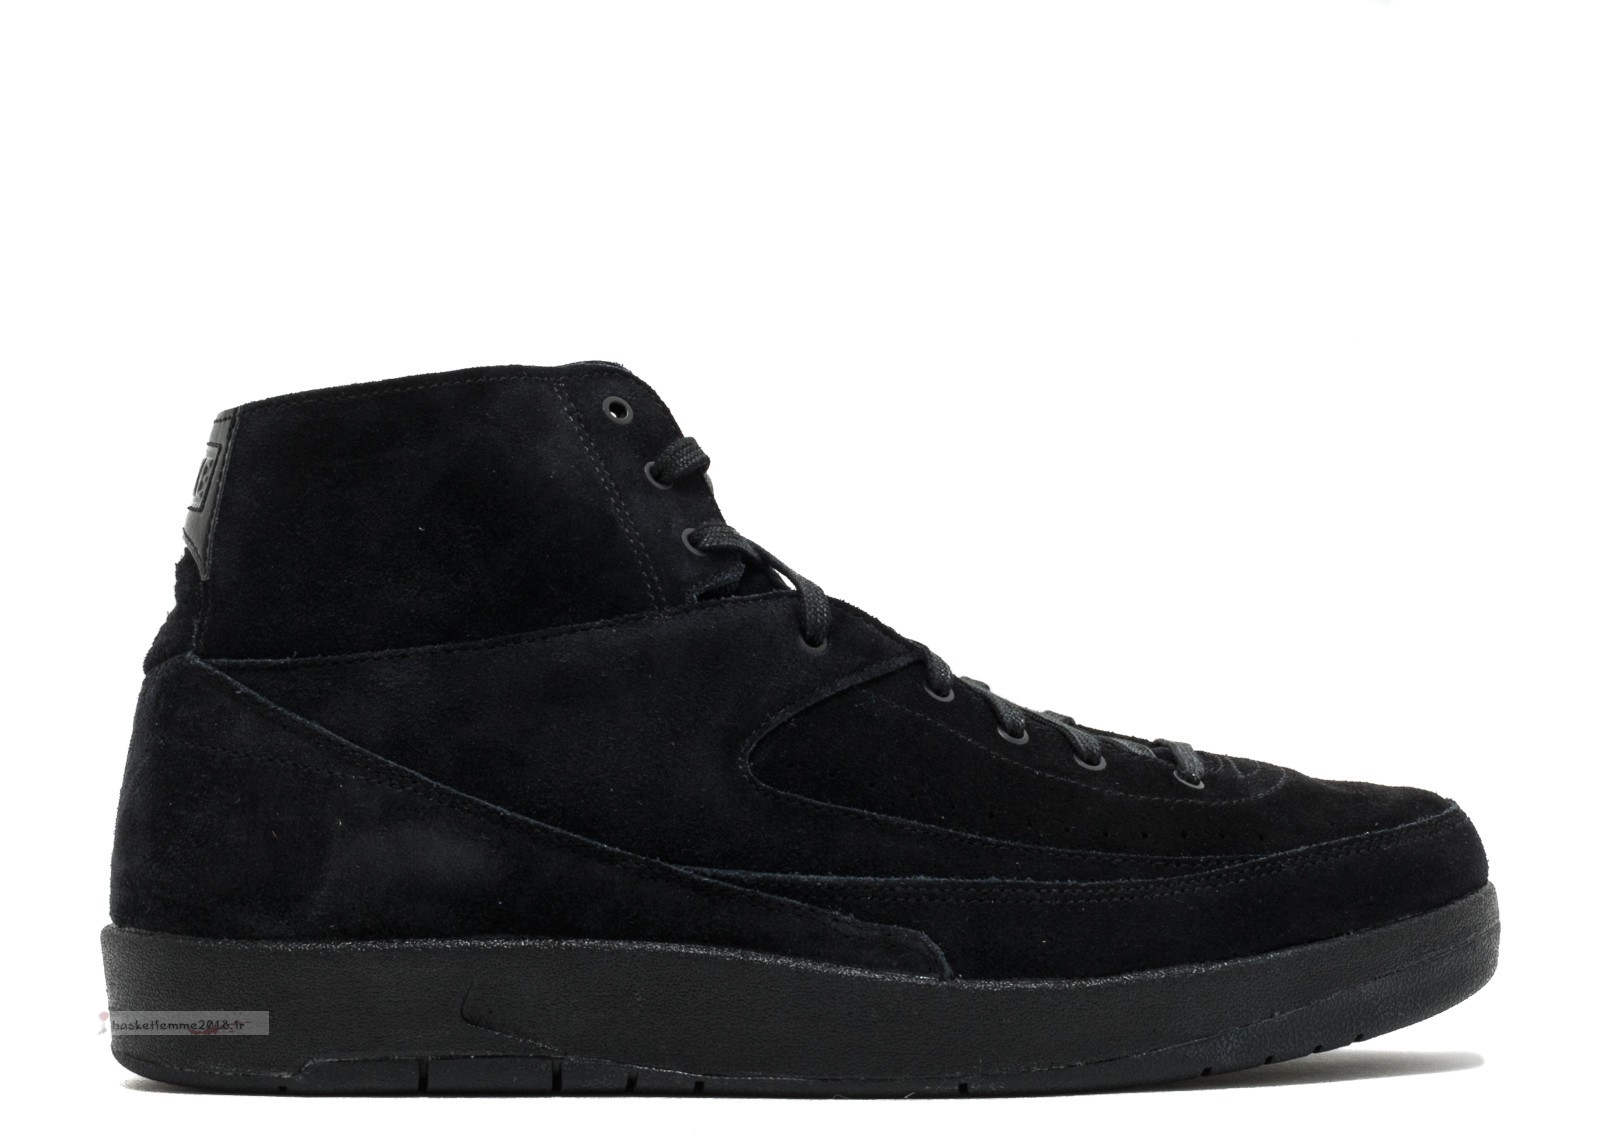 Air Jordan 2 Retro Decon Noir (897521-010) Chaussure de Basket